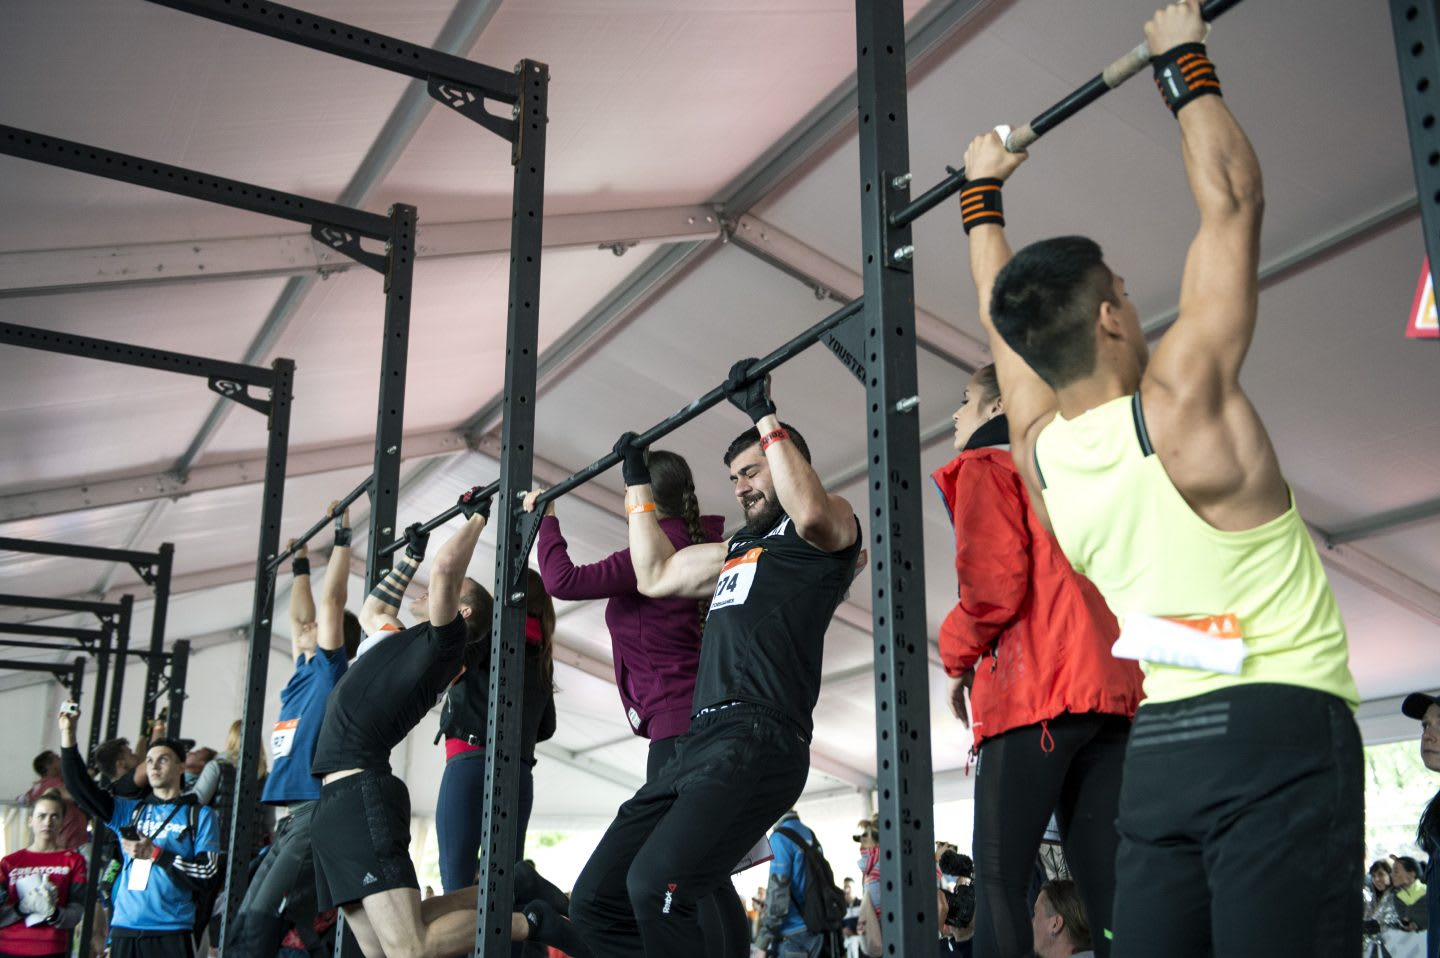 A group of men are doing pull ups at a bar while they are being monitored by referees. Crossfit; Motivation; Competition; Hard work; Workout